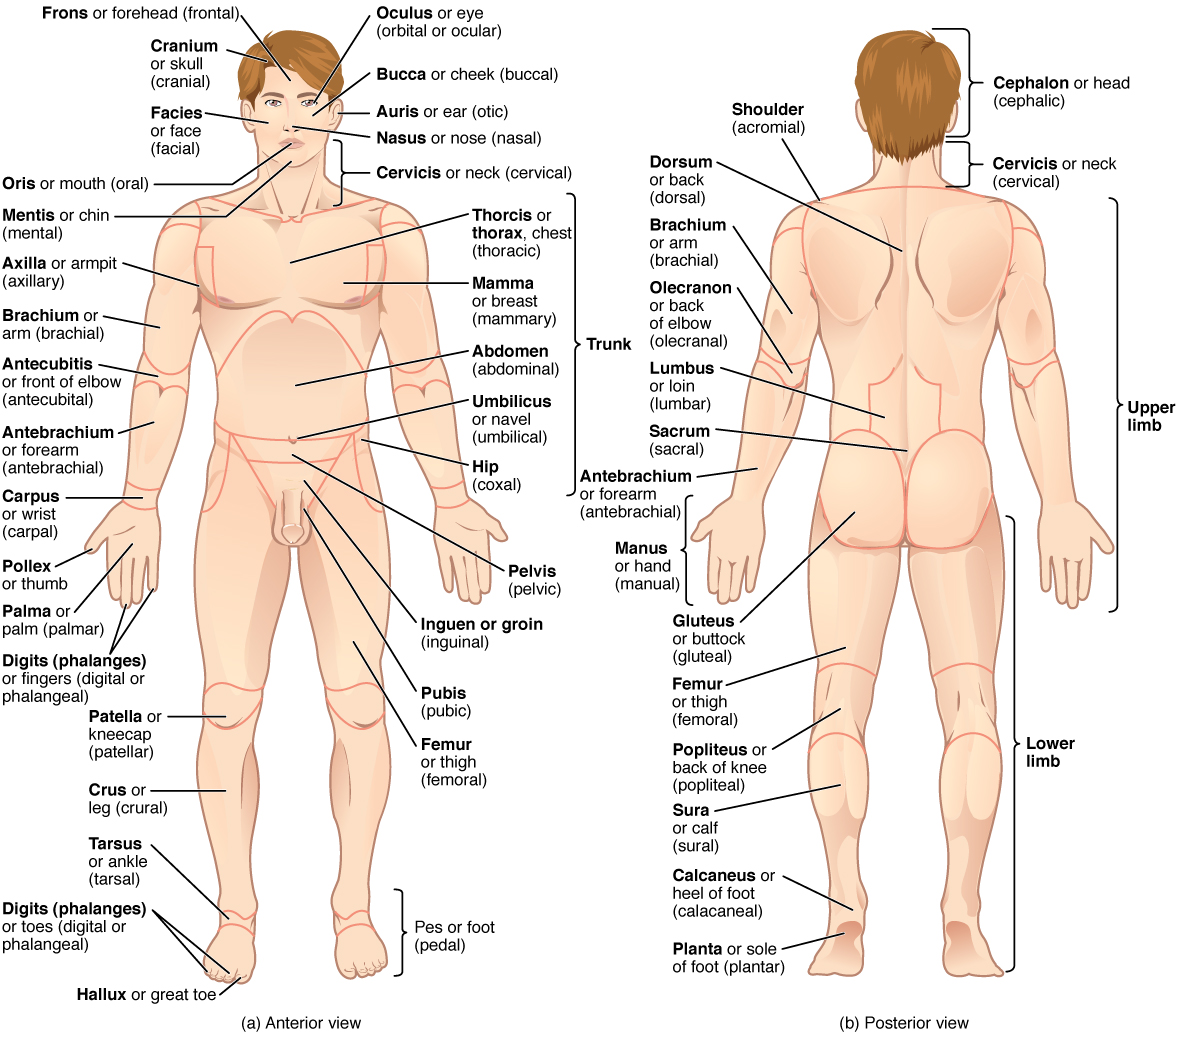 Anatomical Terminology | Anatomy and Physiology I